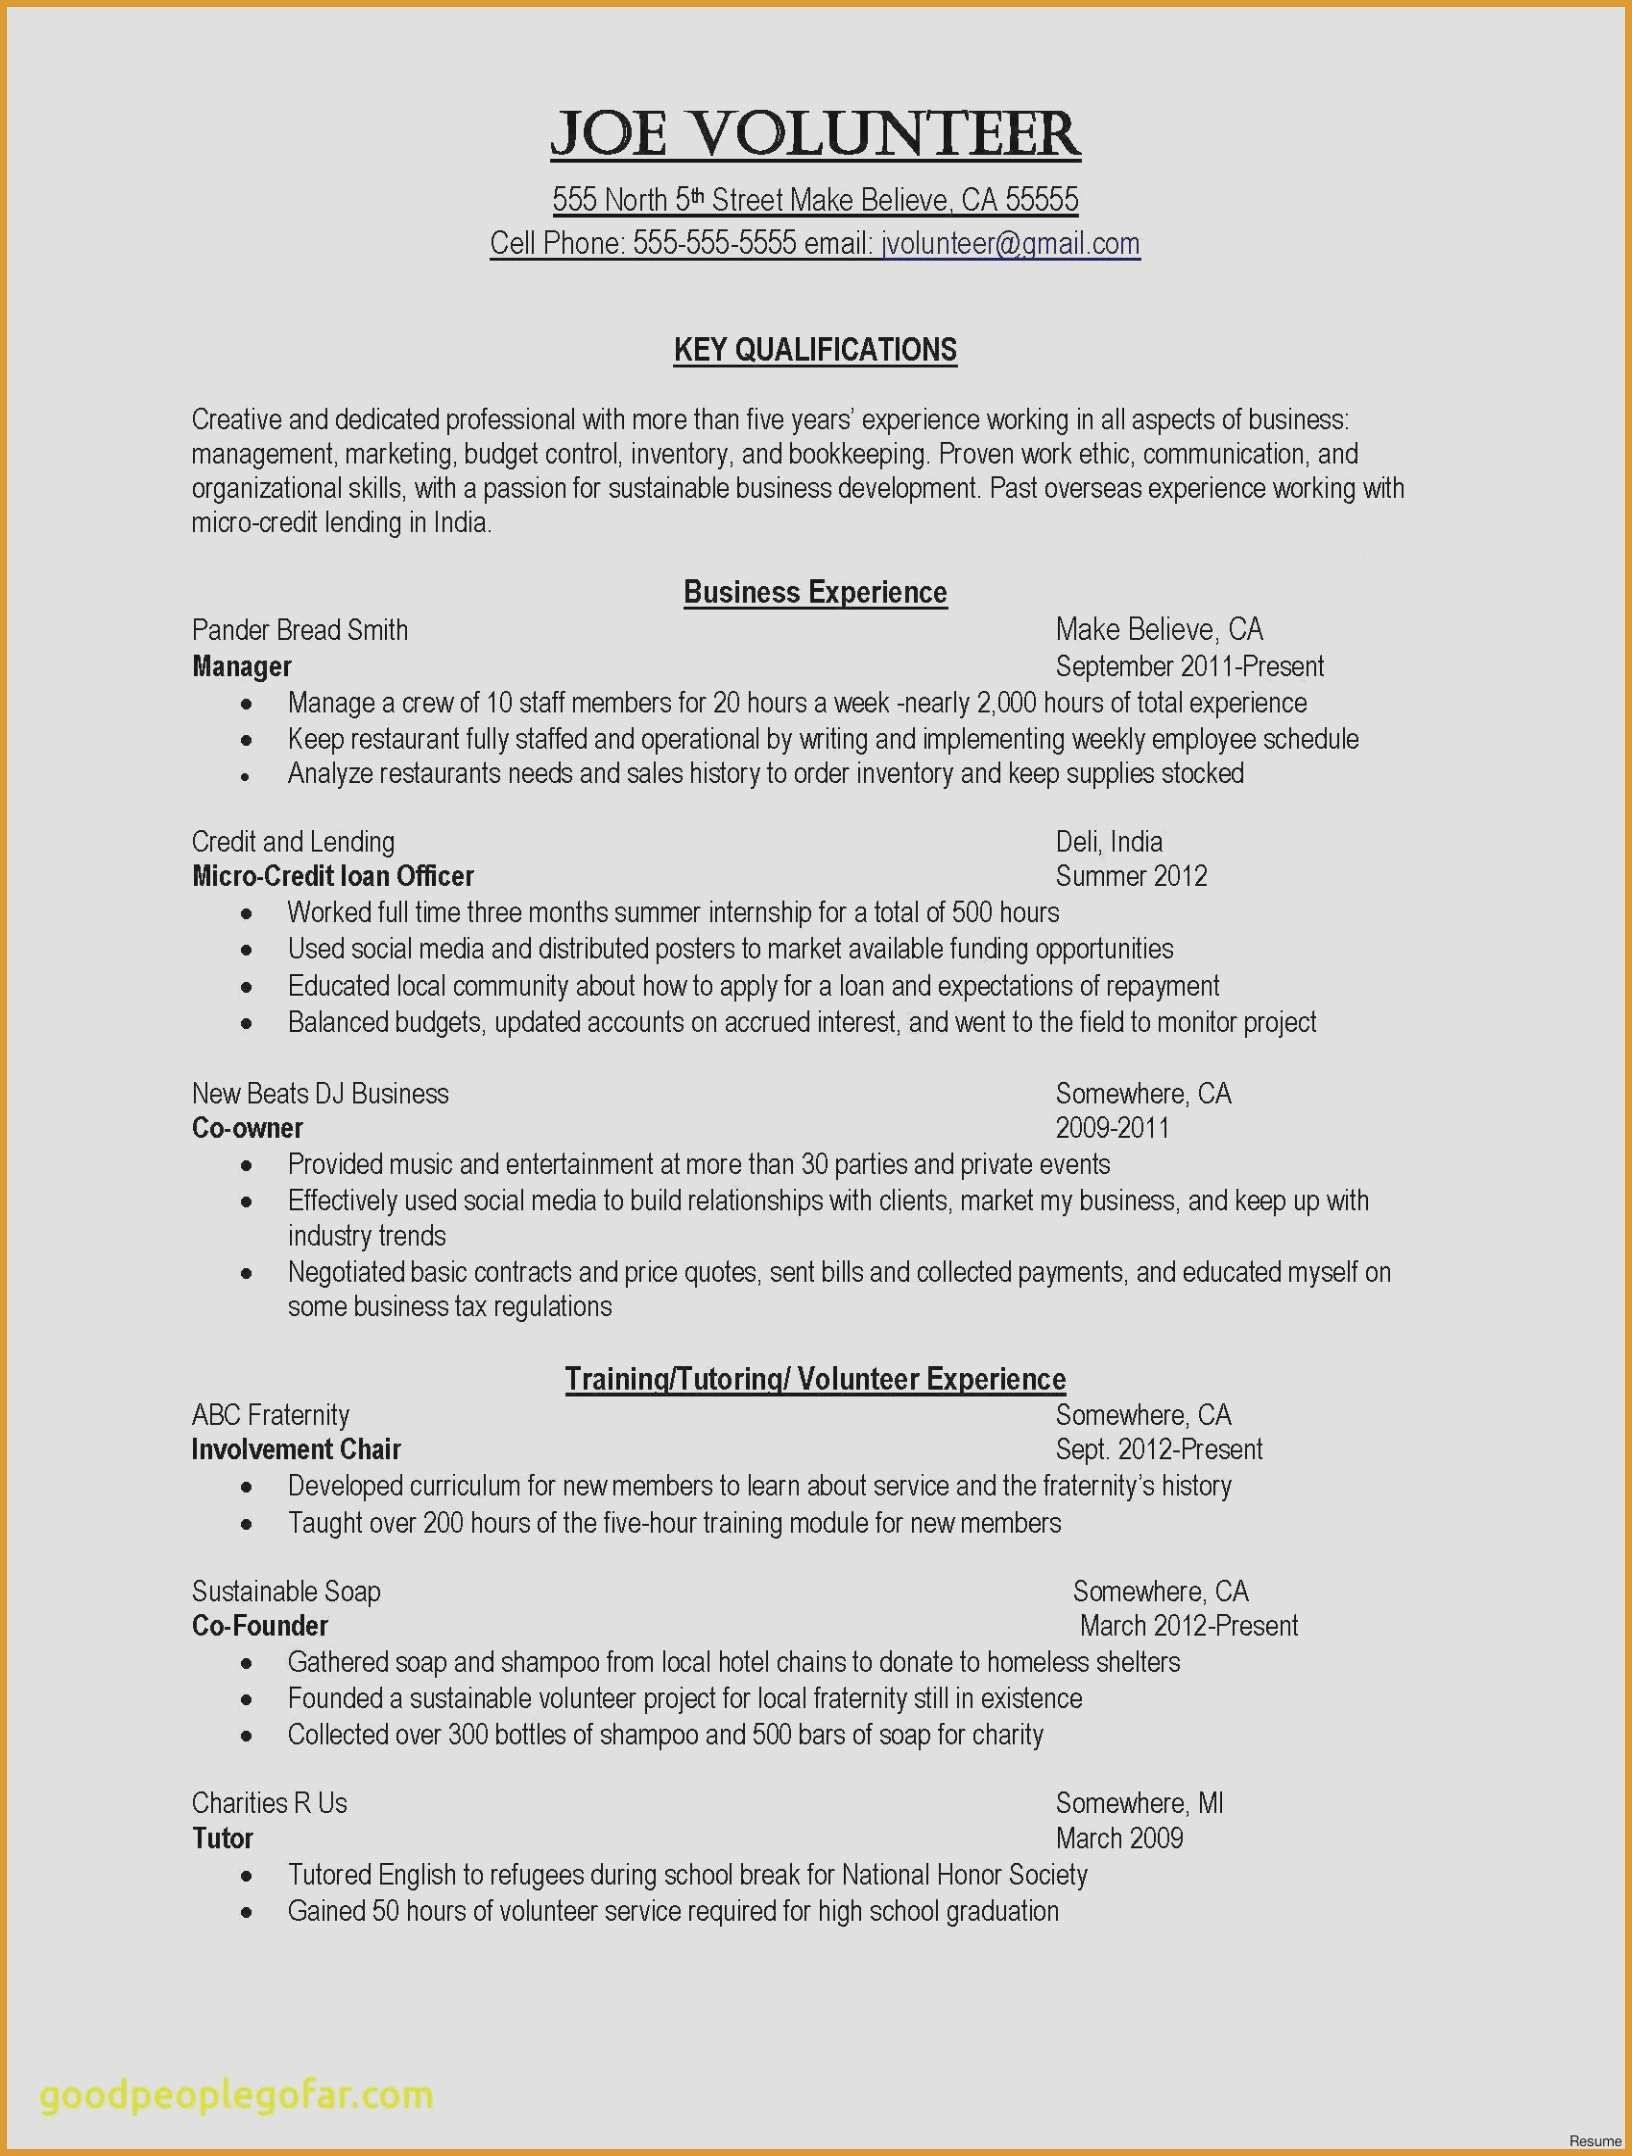 70 Unique Image Of Resume Samples Of Teachers With Experience Check More At Https Www Ourpetscrawley Com 70 Unique Image Of Resume Samples Of Teachers With Ex